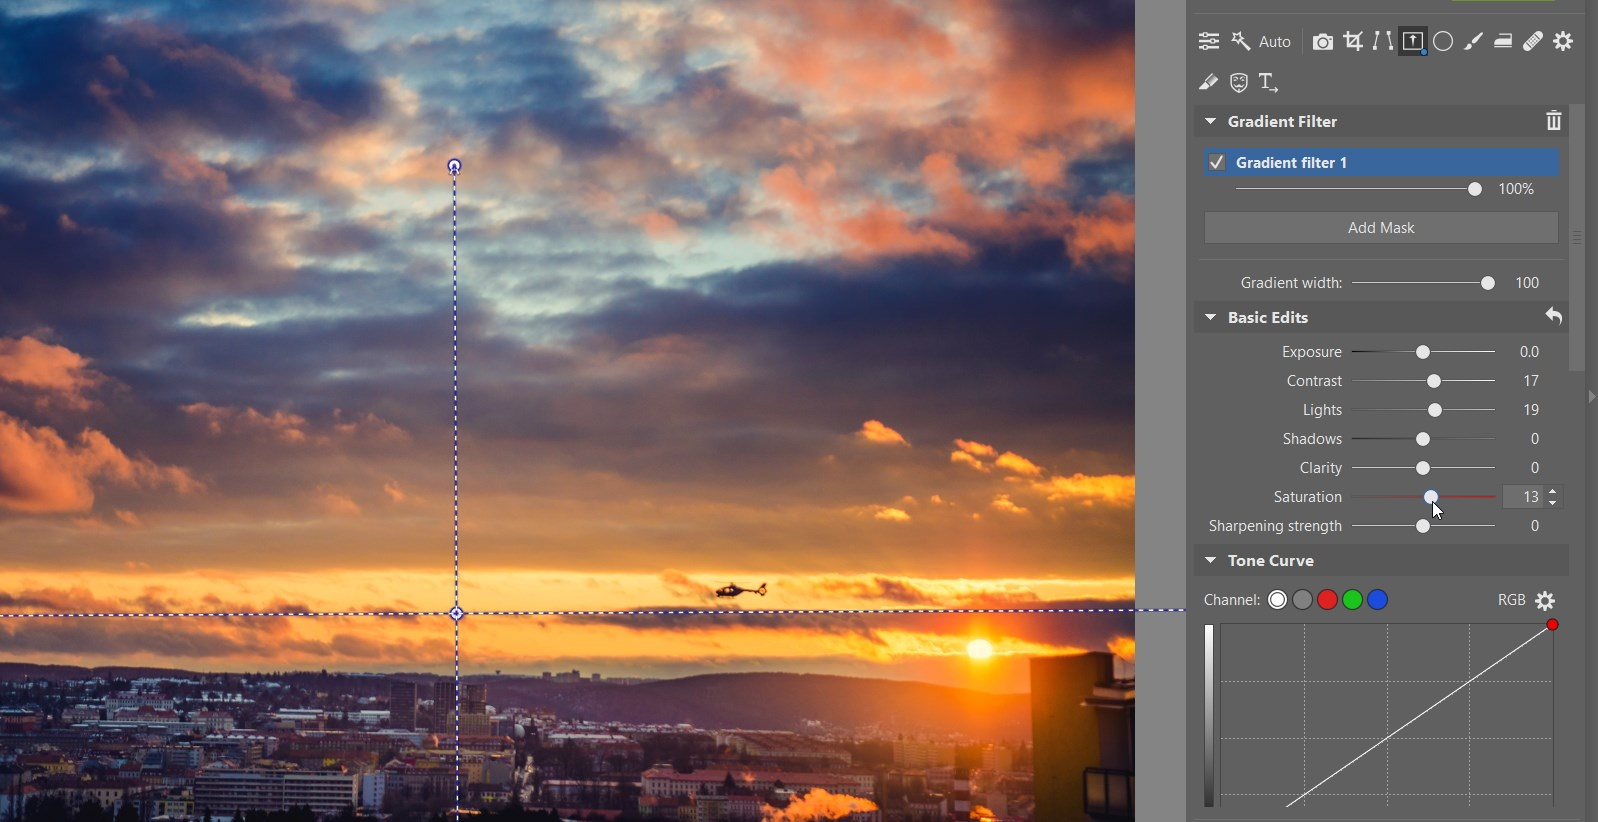 How to use the Gradient Filter when editing your photographs